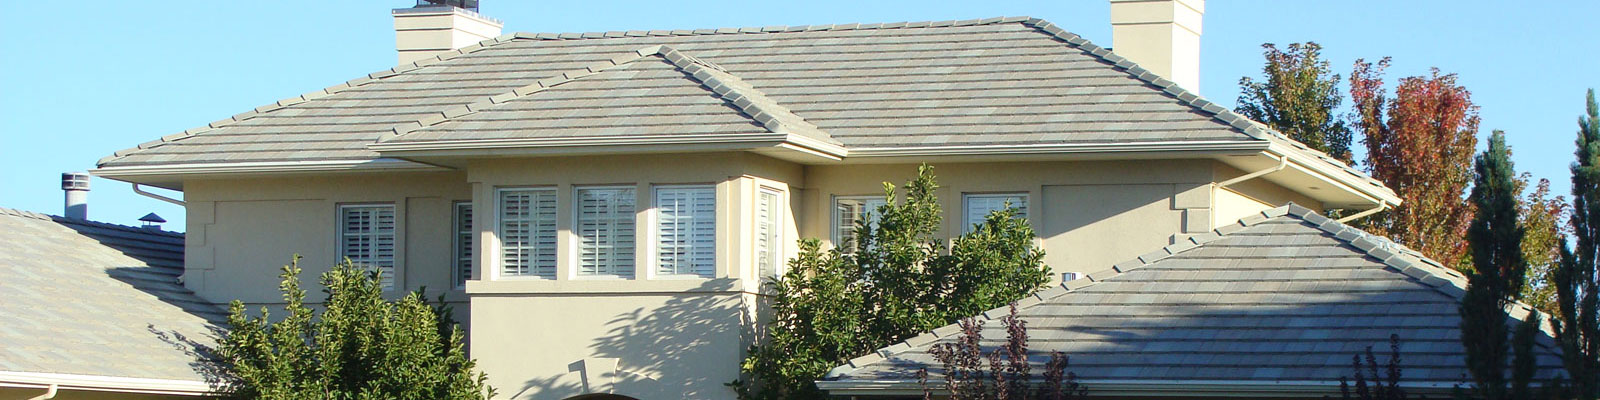 Is your stucco exterior looking a little dull. Give it a good scrub and make it shine for the summer season.